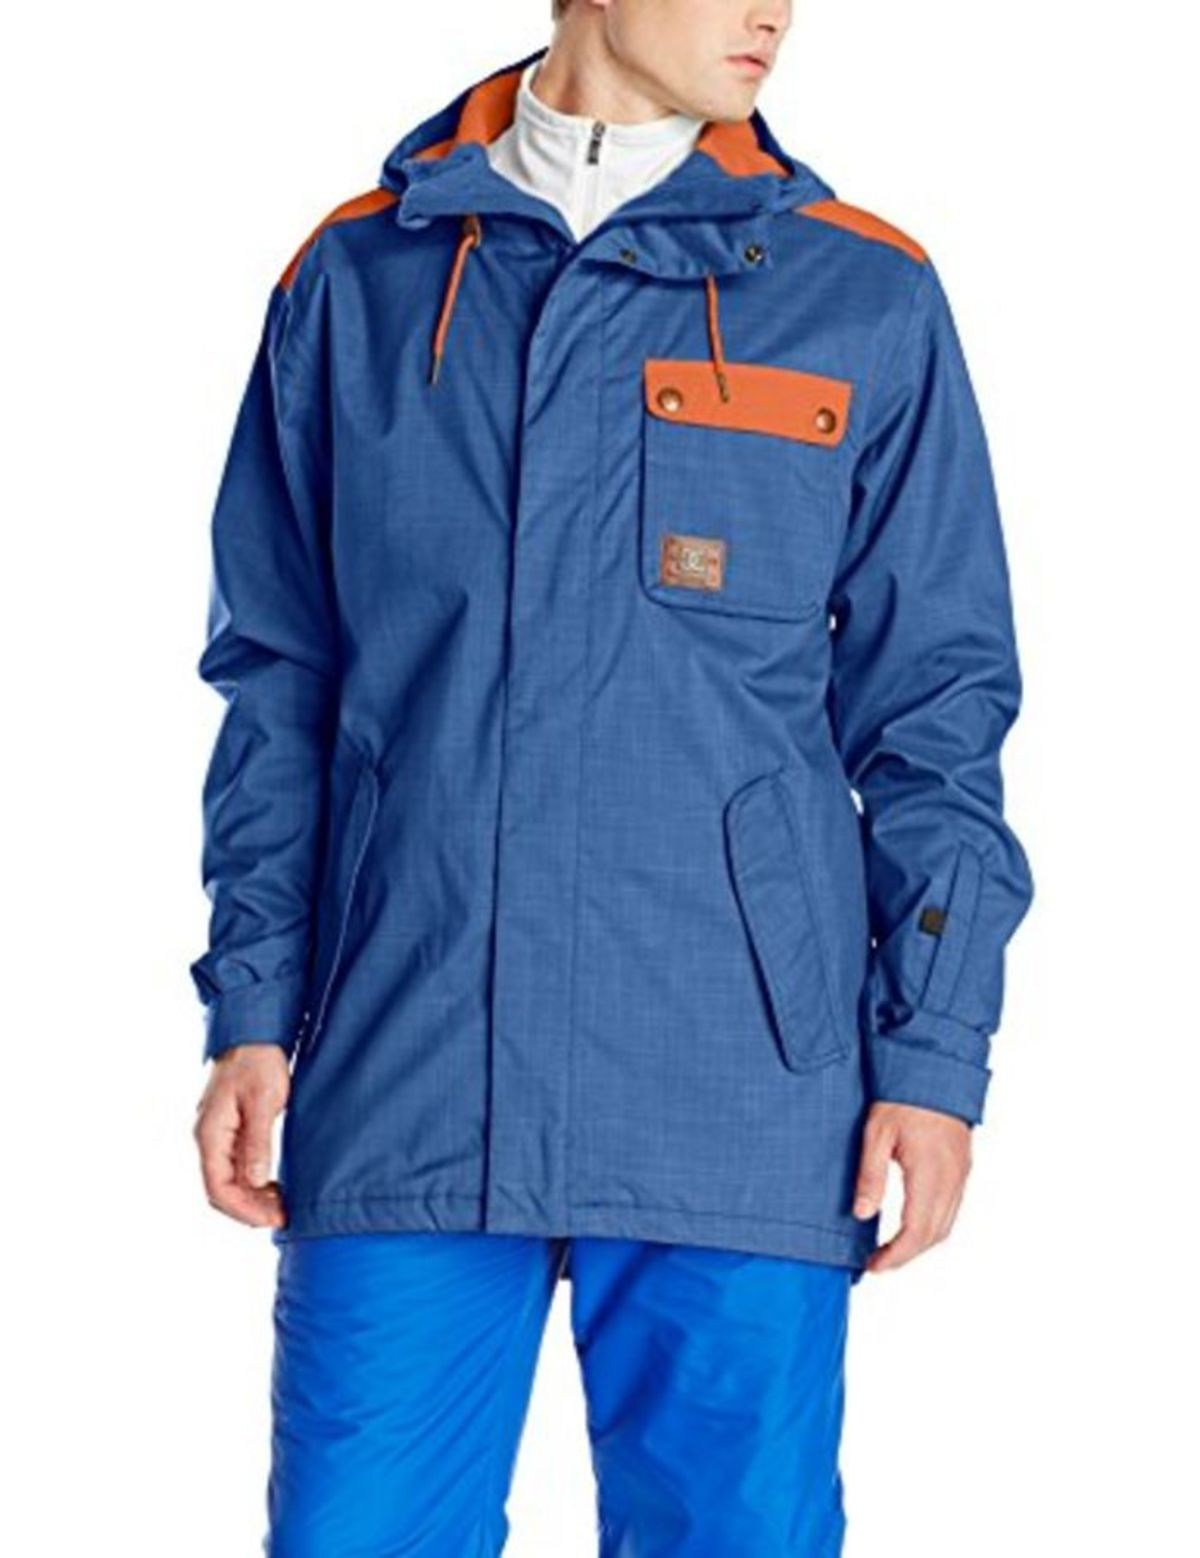 Headline for Best Rated Cheap Men Insulated-Down Ski Jackets 2017 | Discount Snowboard Jackets Reviews